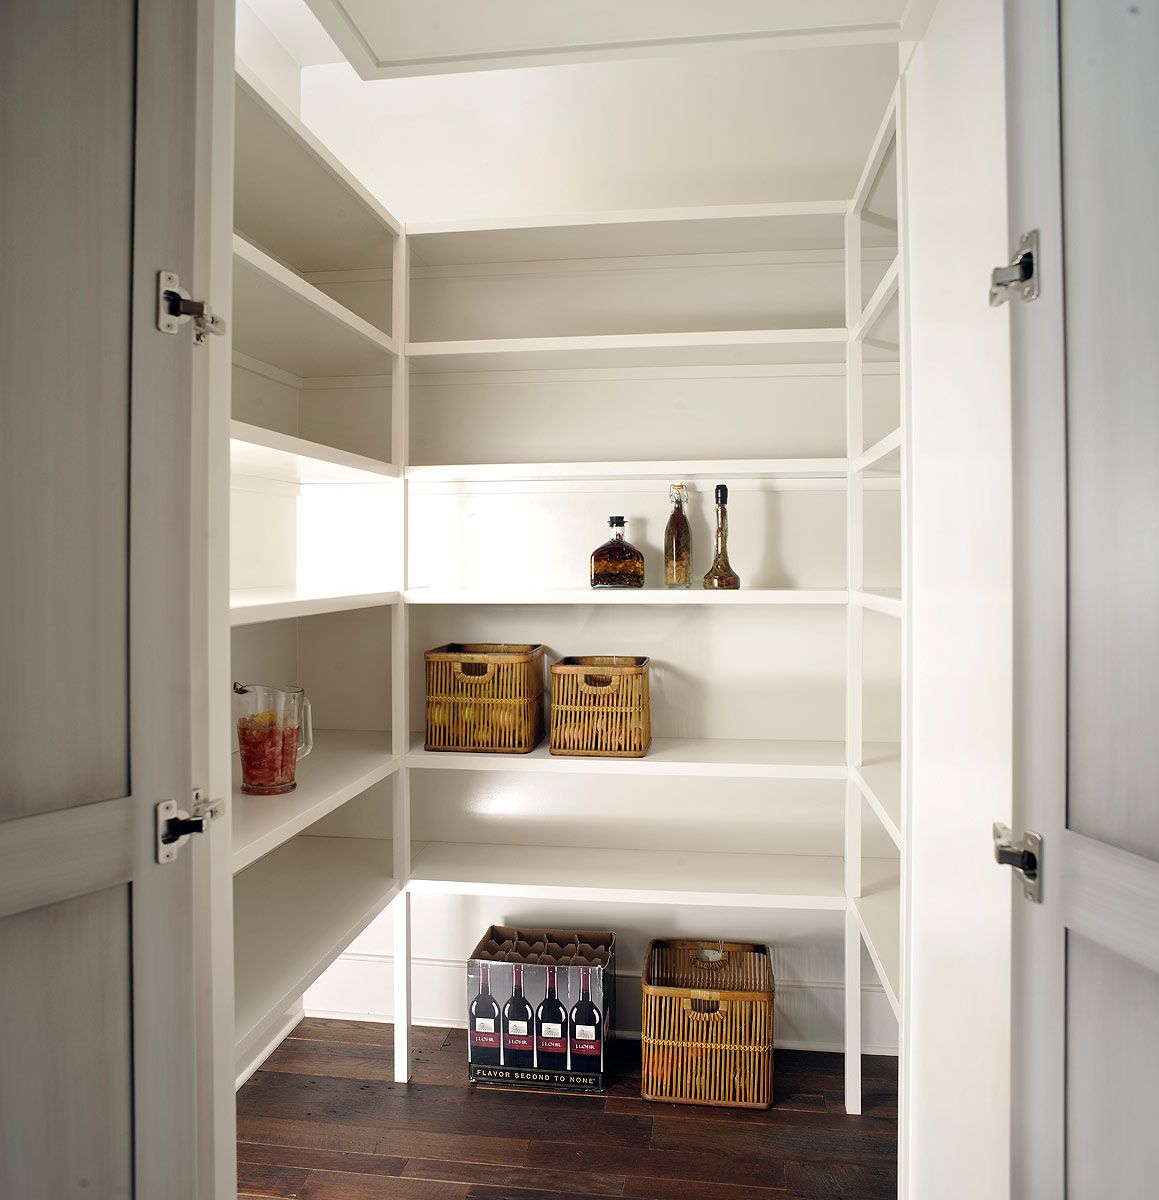 Effective Pantry Shelving Designs For Well Organized: This Walk-in Pantry Offers Plenty Of Room For Oversized